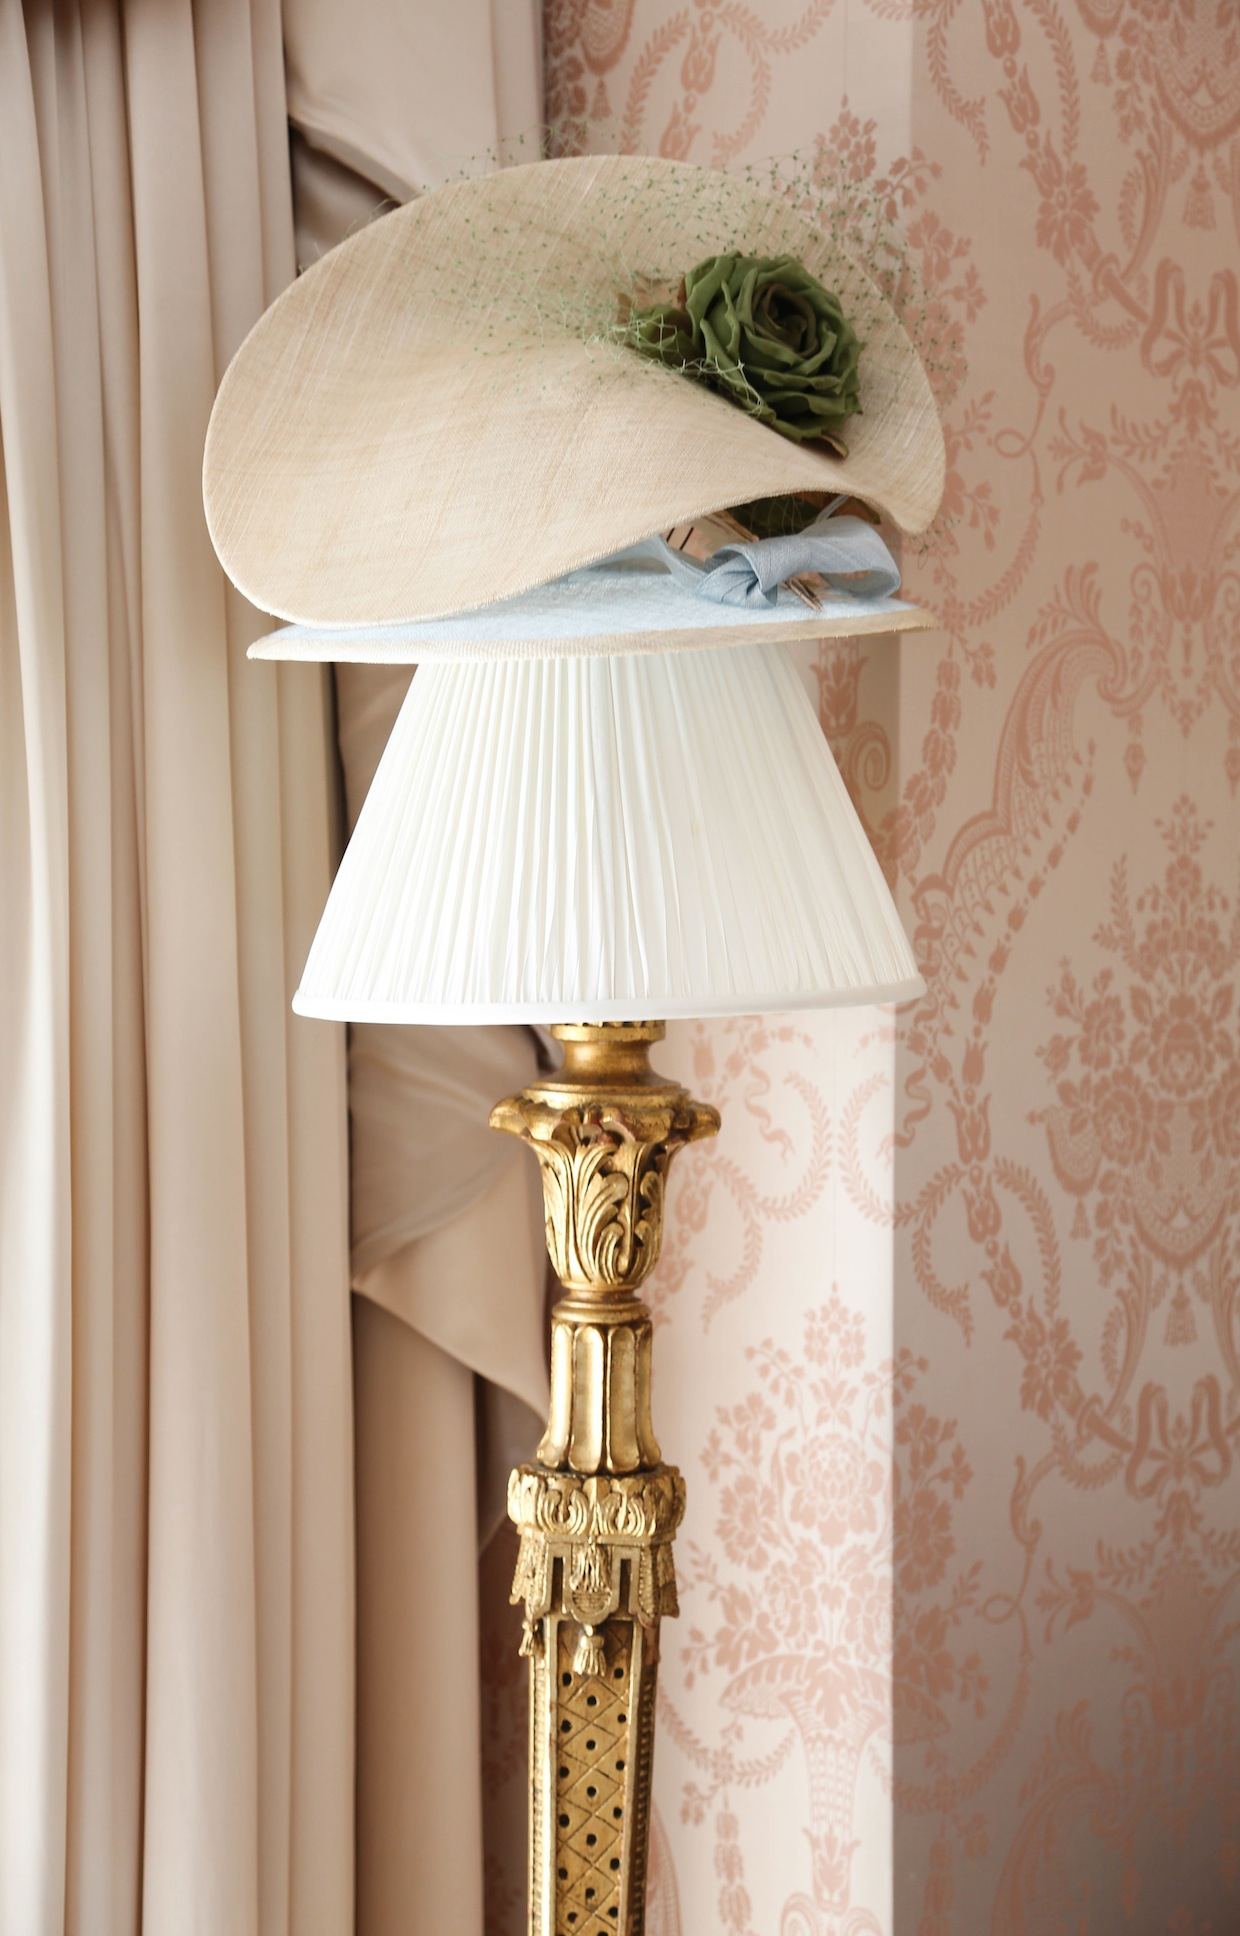 gina-foster-the-goring-collection